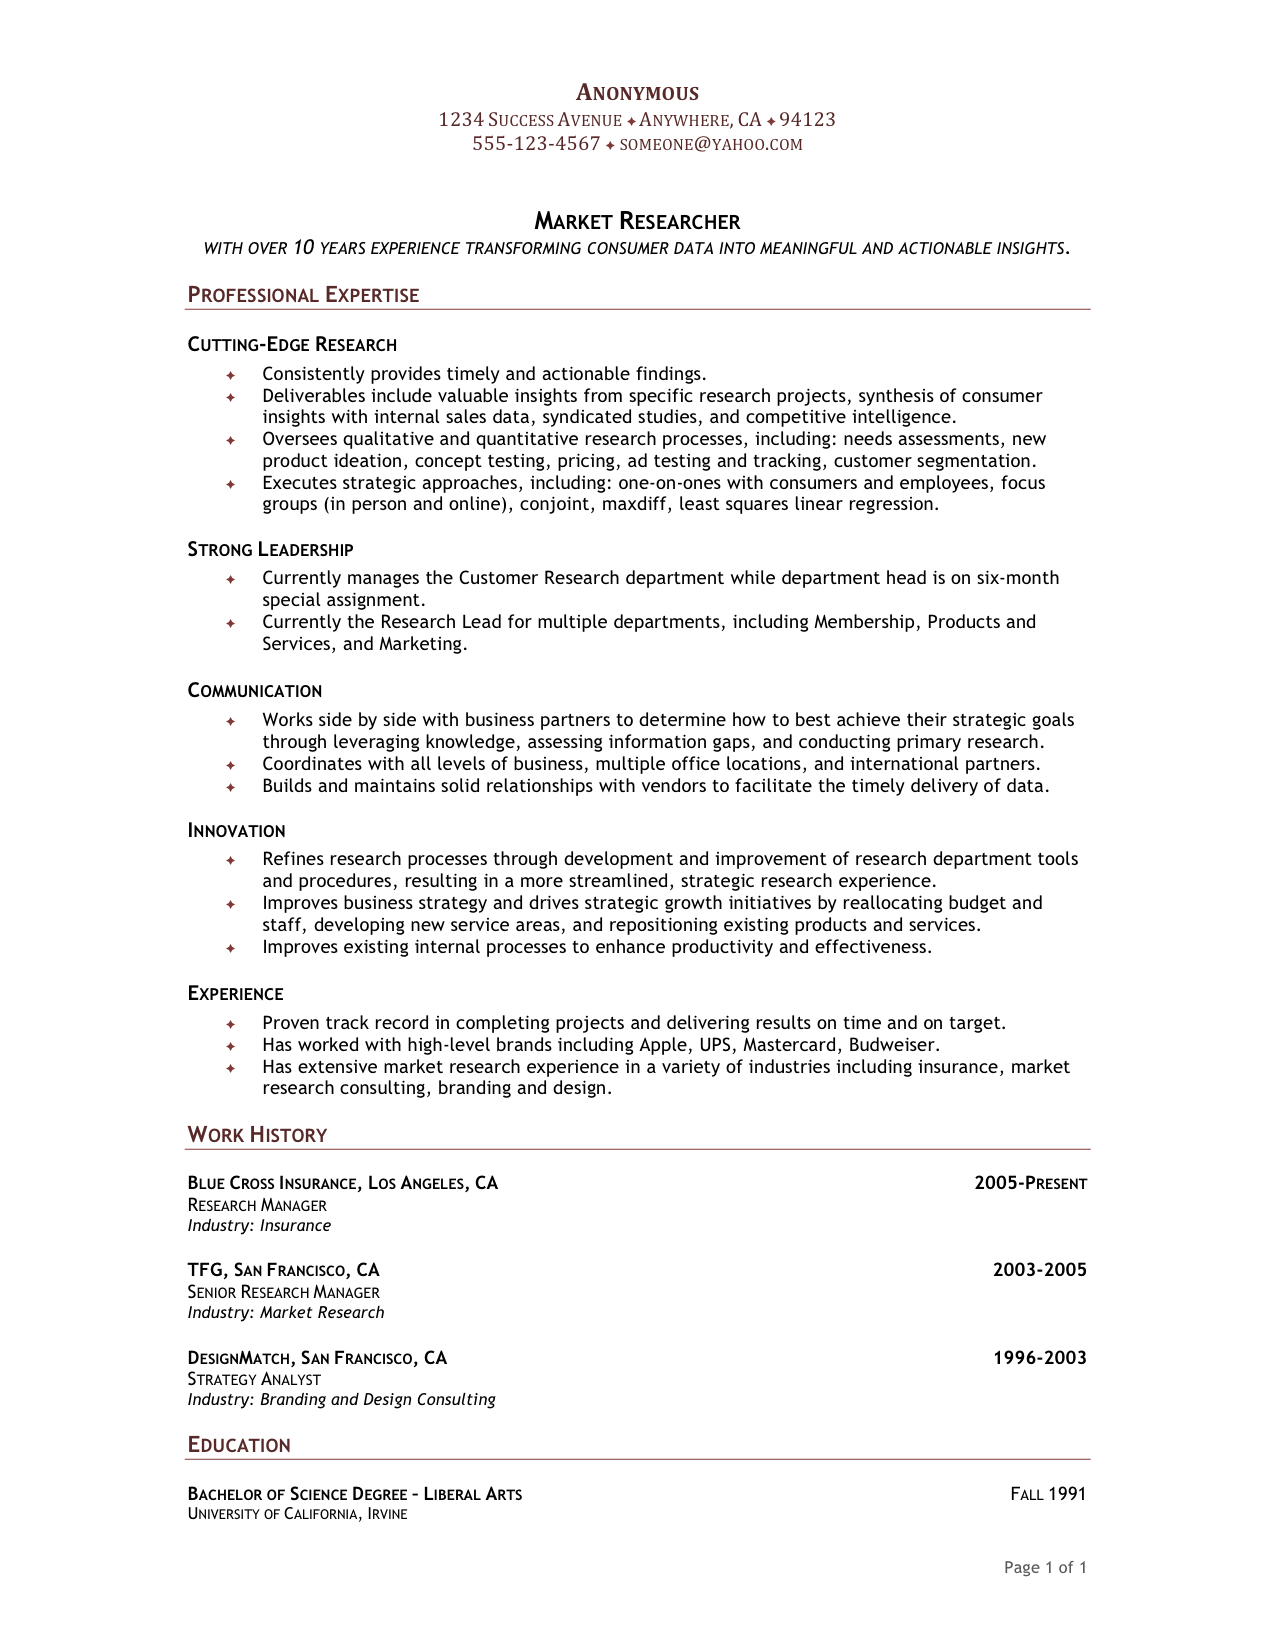 Good Writing Guide Royal Holloway Resume For Home Health Nurse